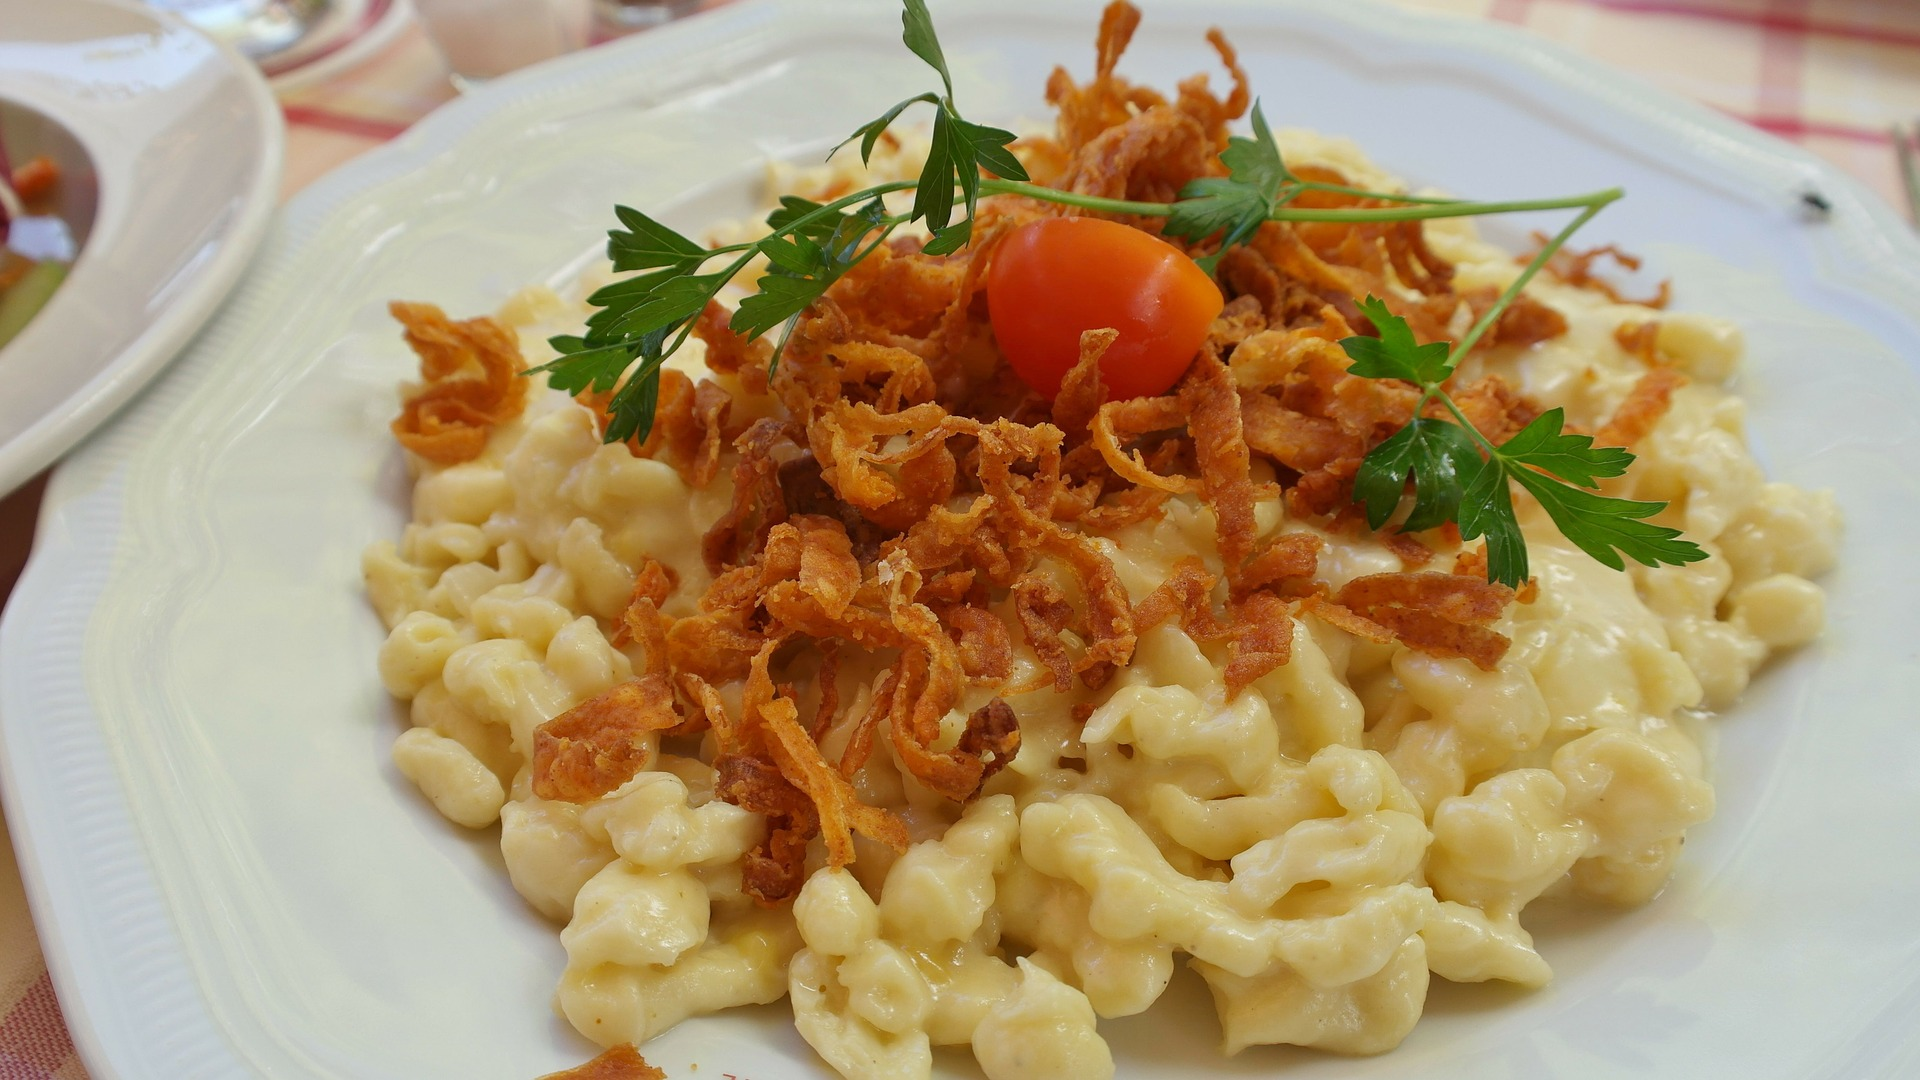 cheese-noodles-174858_1920